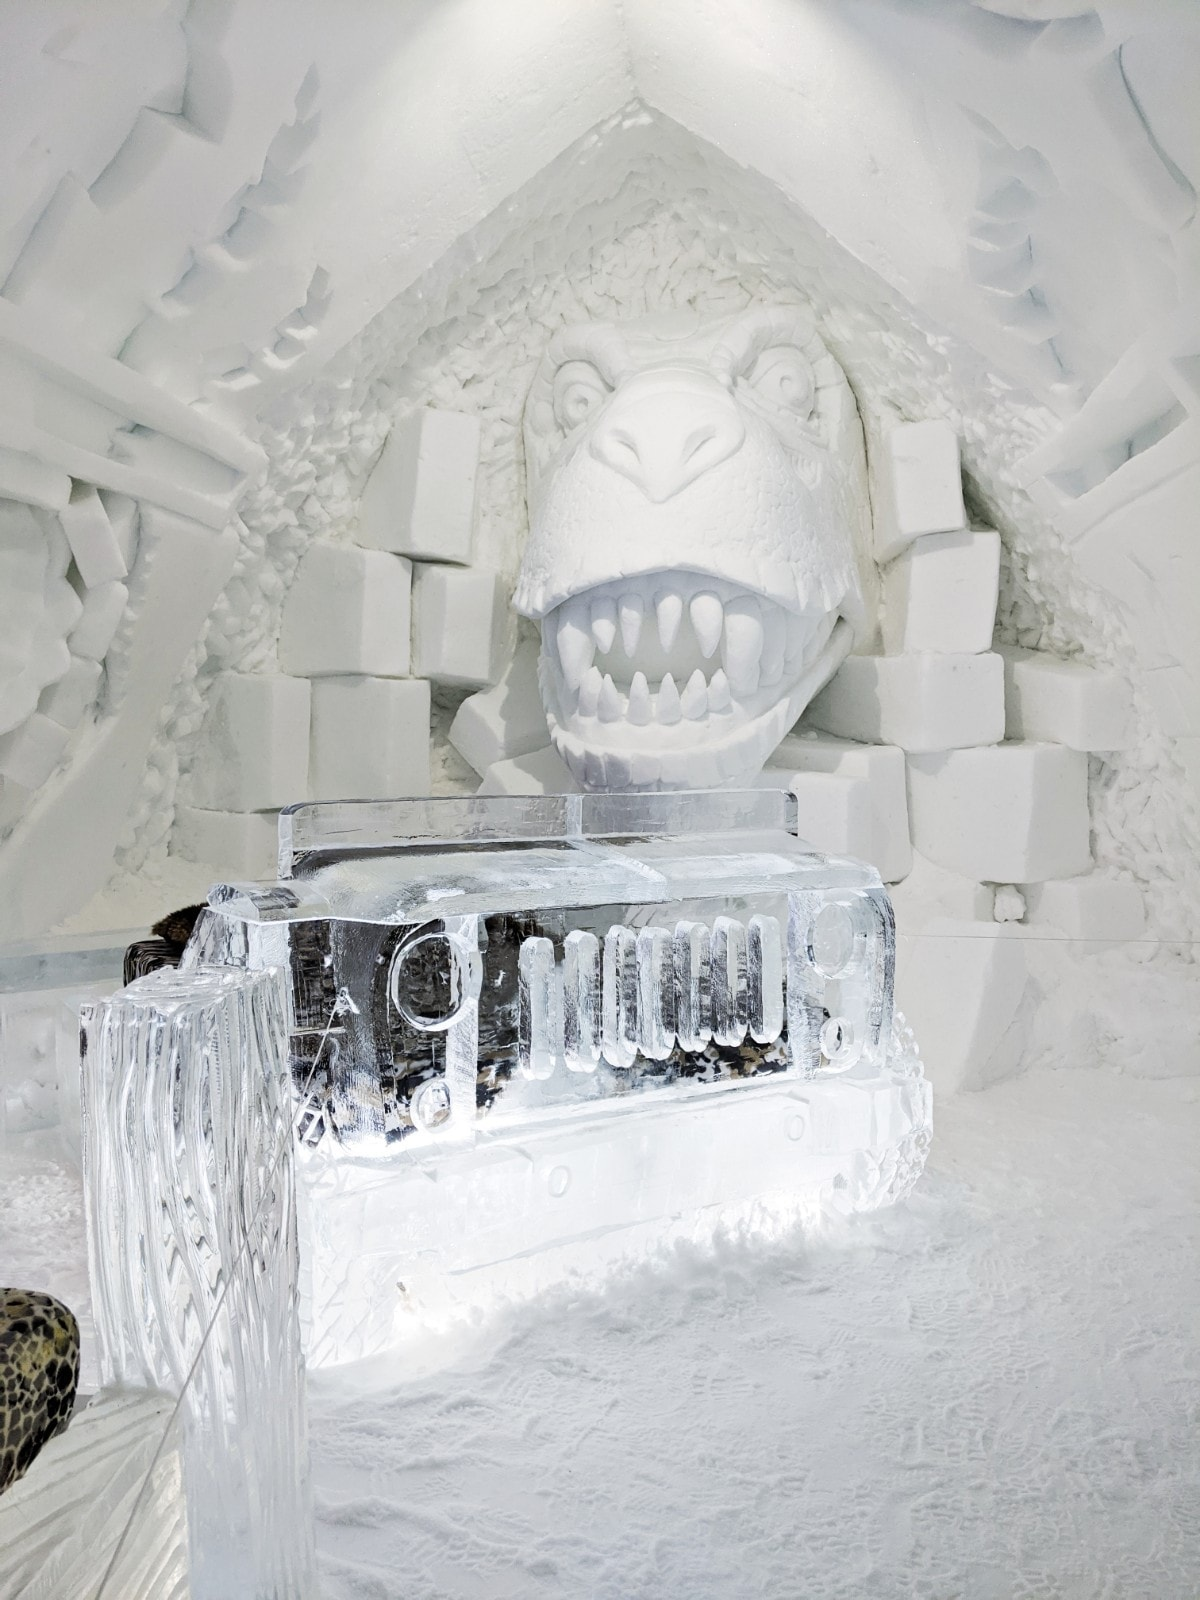 The dinosaur room with T-Rex carved into the snow, behind a truck-shaped bed made of ice